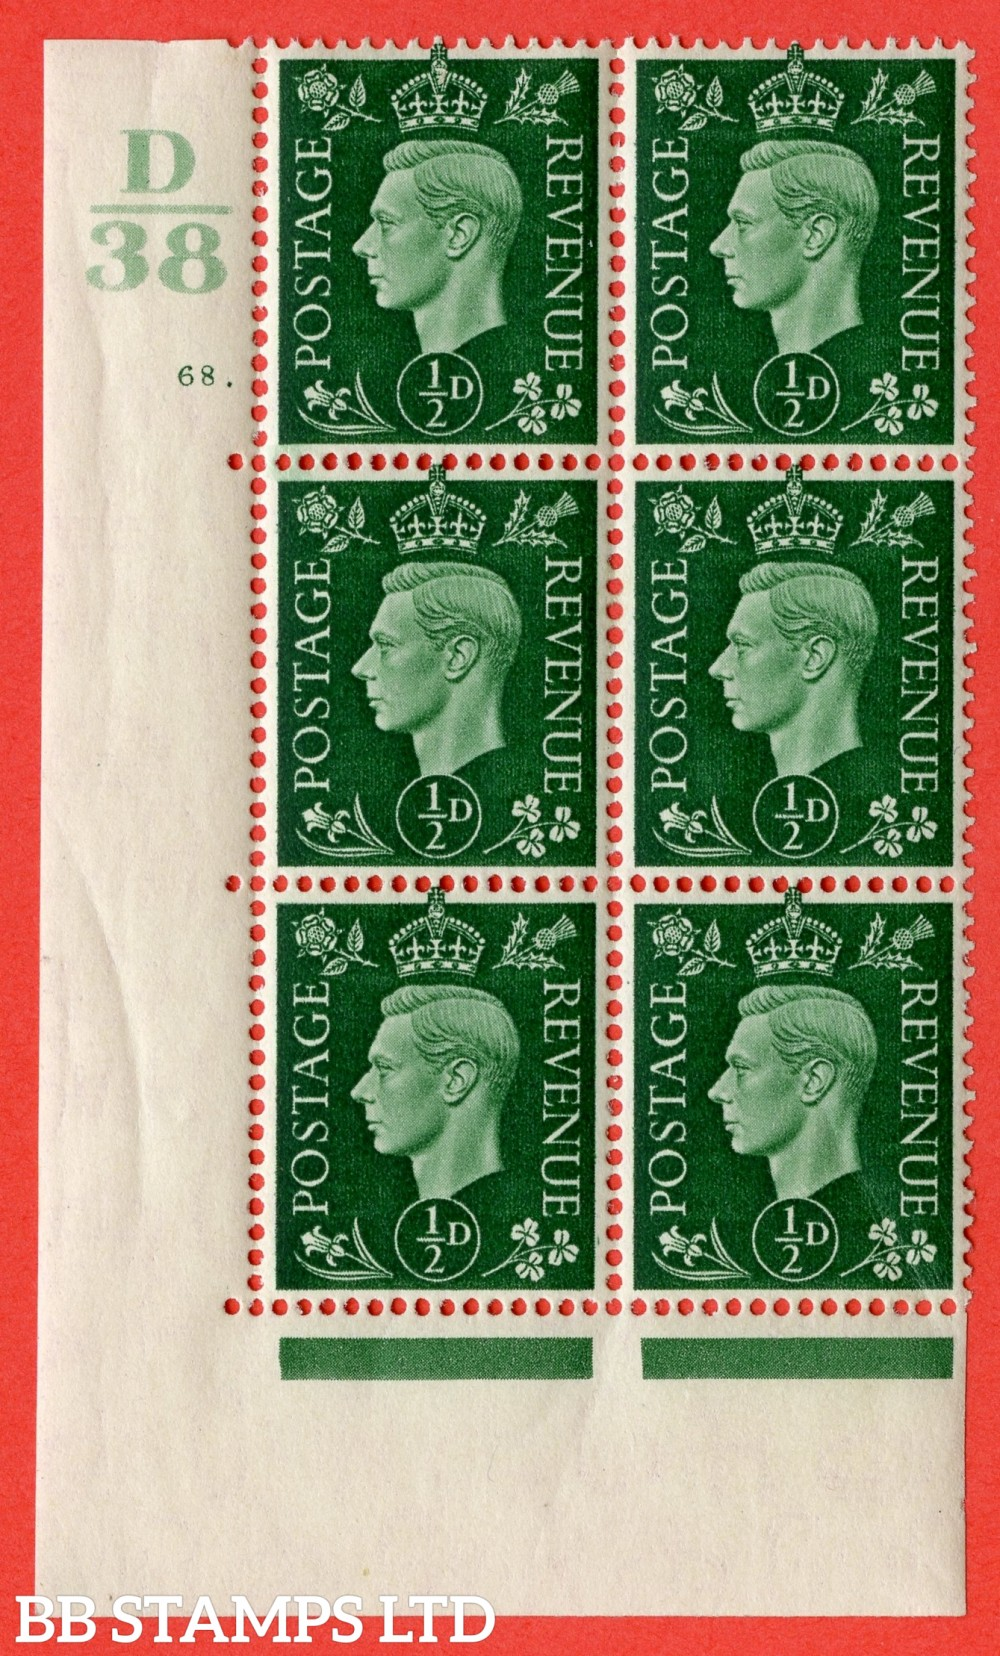 "SG. 462. Q1. ½d Green. A fine lightly mounted mint "" Control D38 cylinder 68 dot "" block of 6 with perf type 5 E/I with marginal rule."